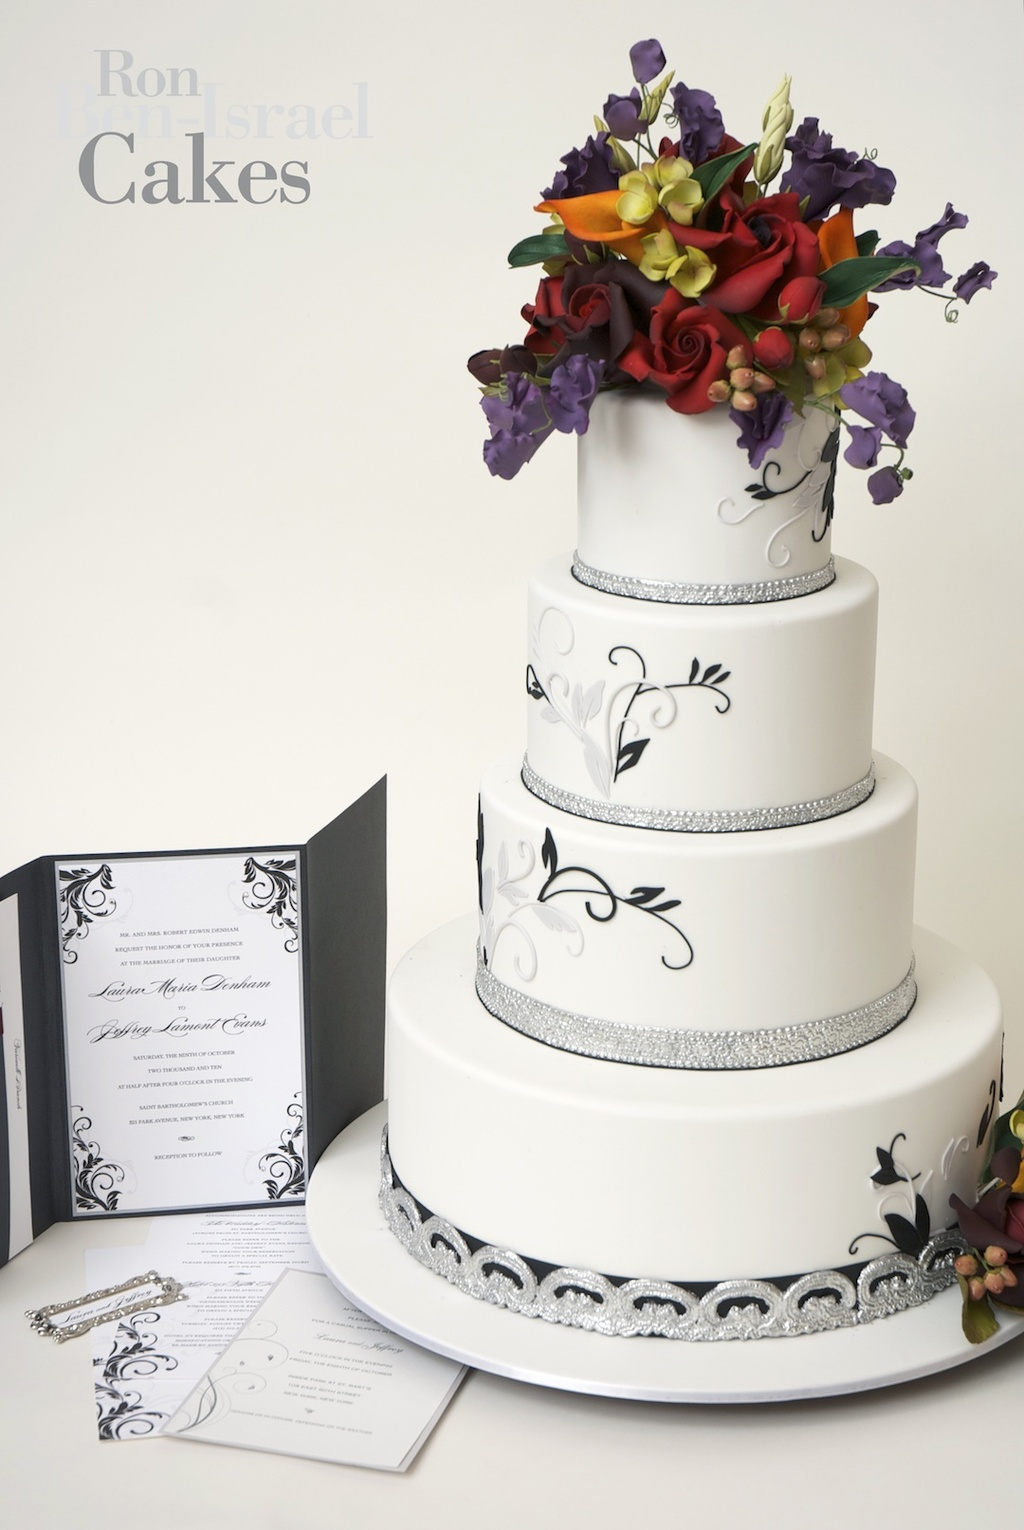 Wedding-cake-inspiration-ron-ben-isreal-wedding-cakes-white-silver-with-fall-florals.full